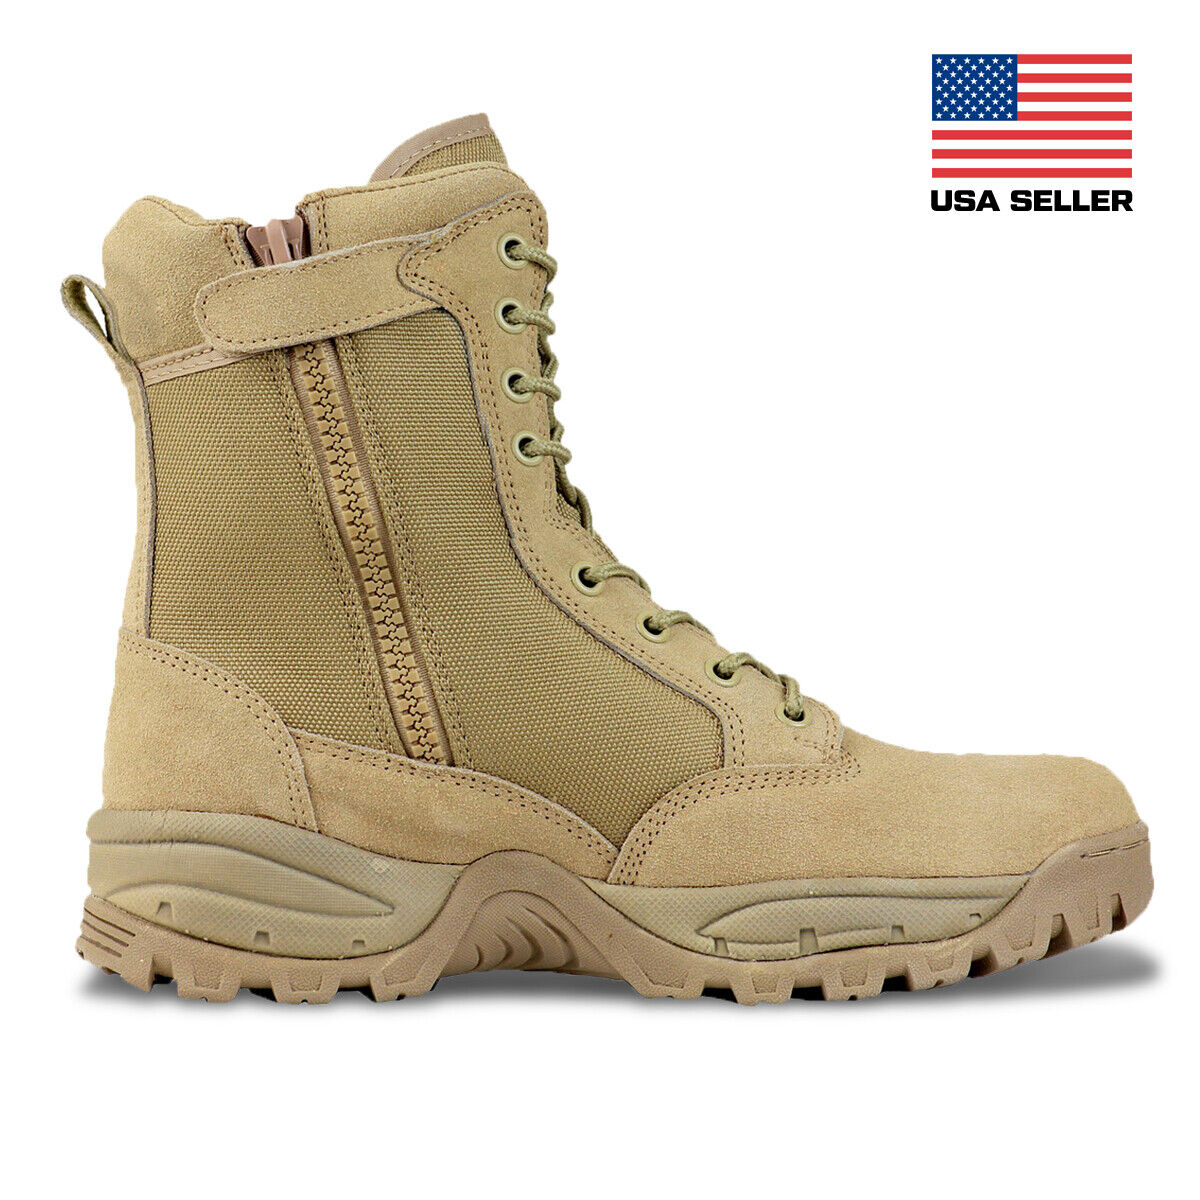 FINAL SALE Men's 8'' Desert Tan Military Tactical Work Boots